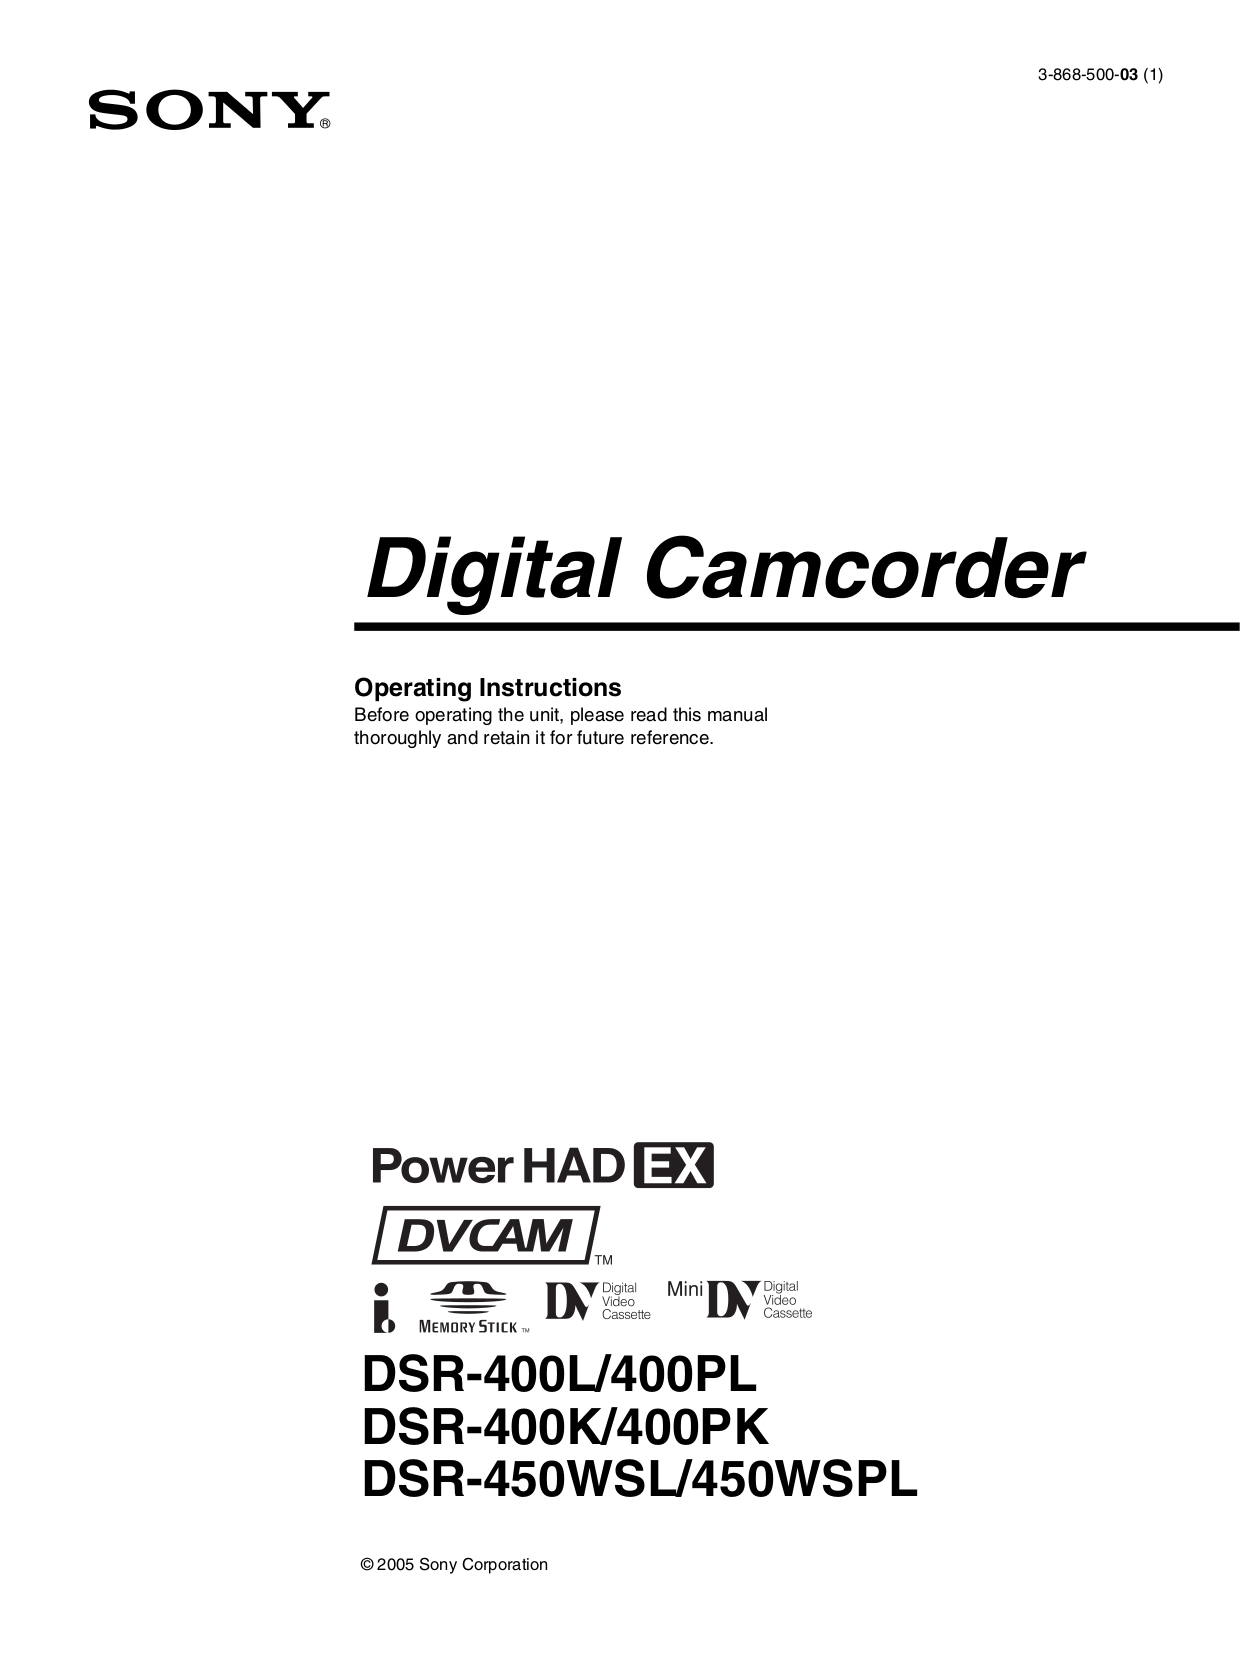 Sony i manual pdf pdf for sony camcorders dsr 450wsl manual fandeluxe Choice Image